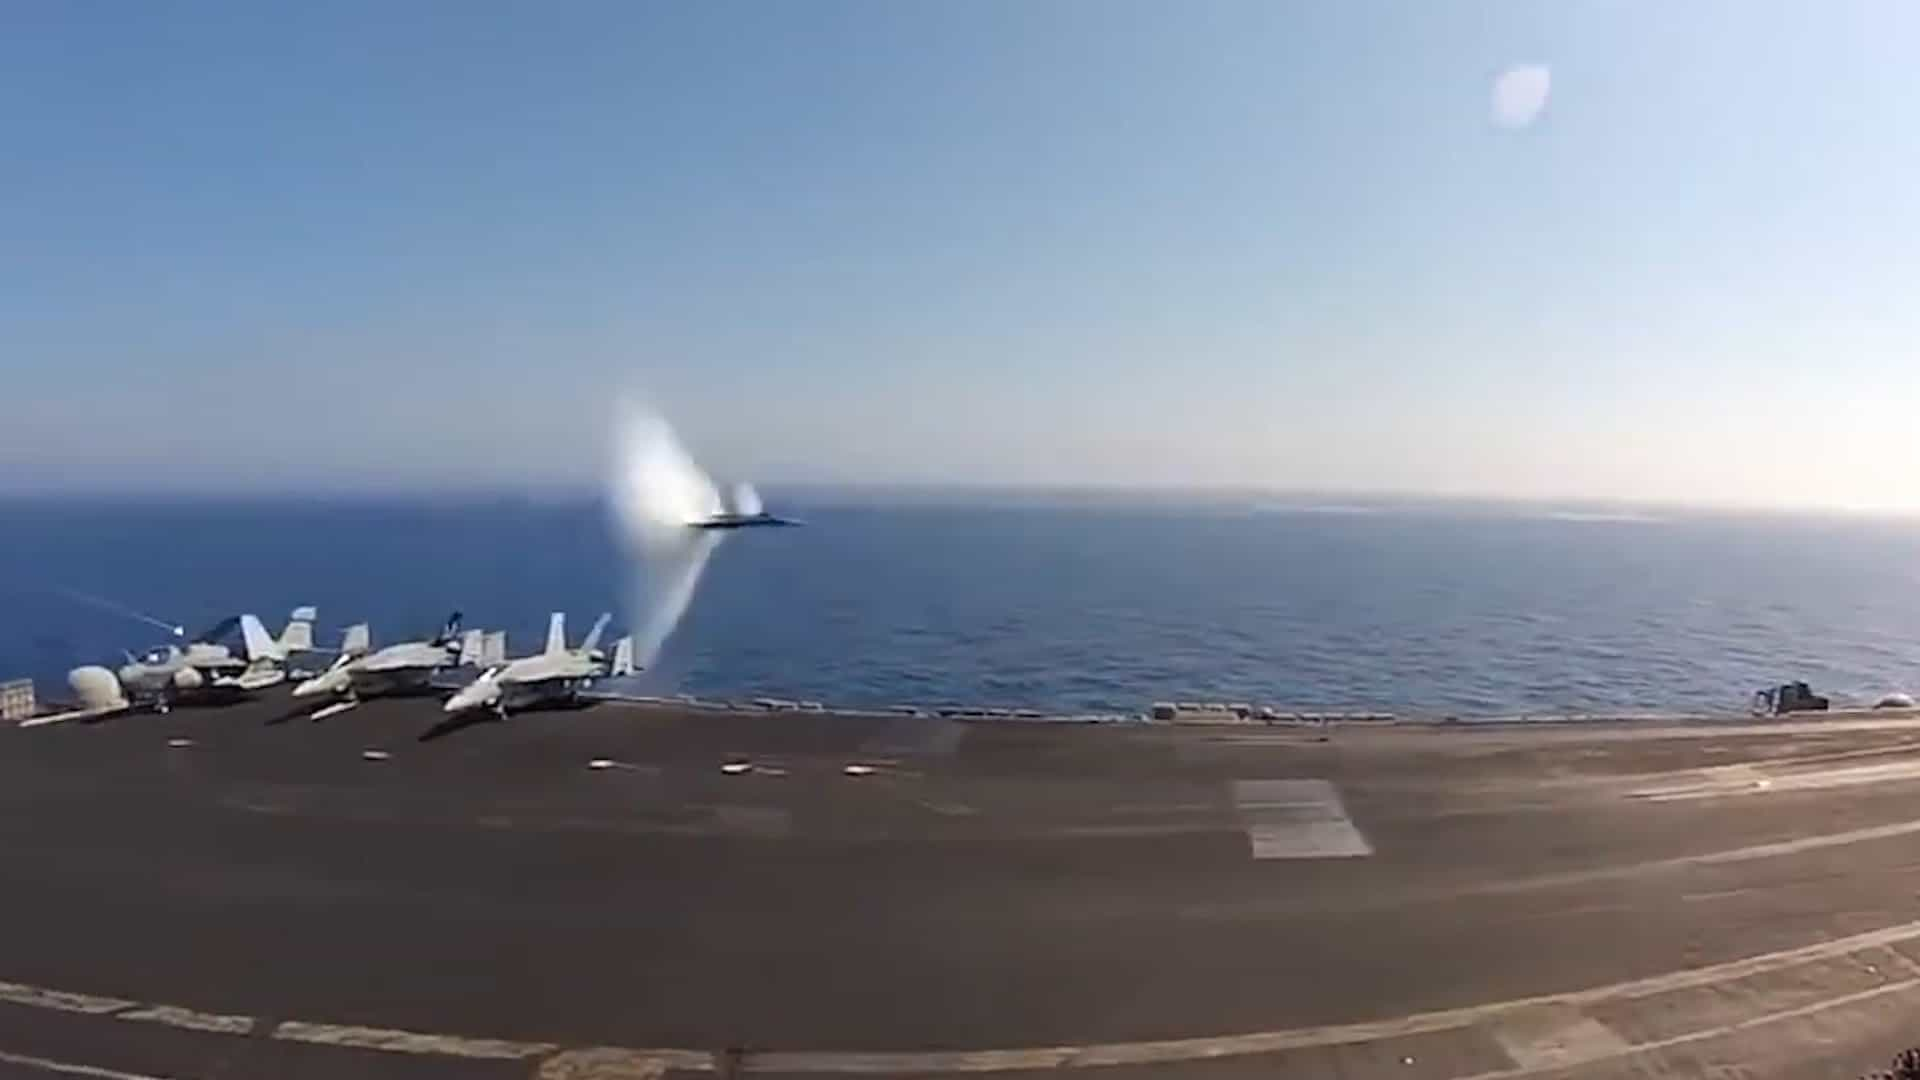 Captivating U.S. Navy Jet Breaks Speed Of Sound Flying Past Aircraft Carrier At  Supersonic Speed U2022 AwesomeJelly.com